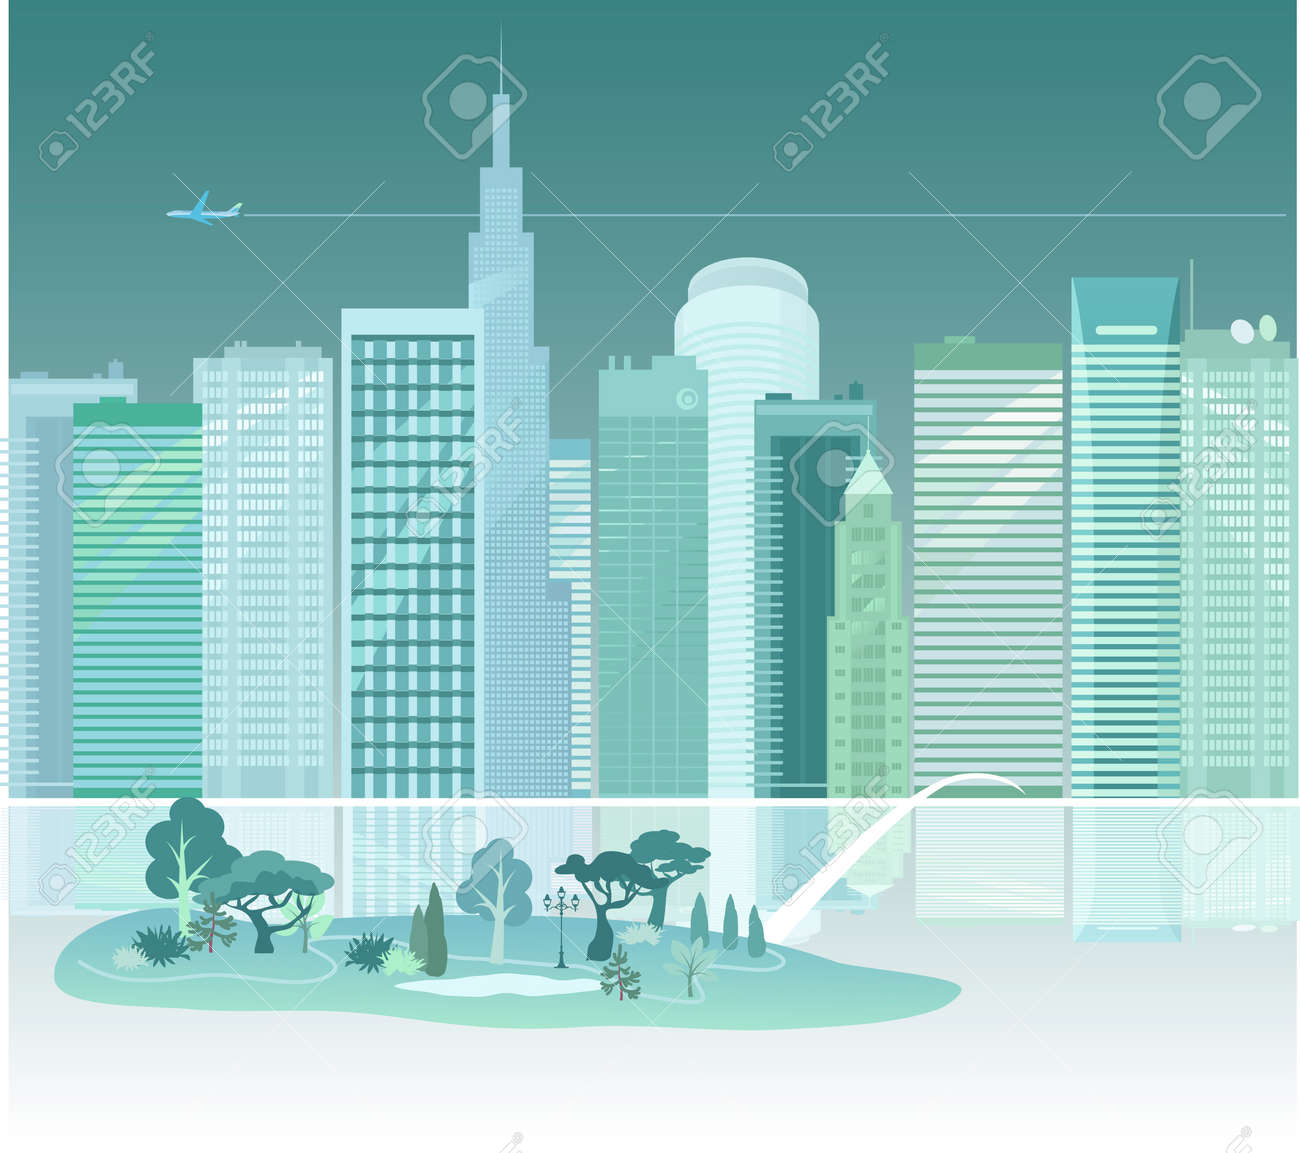 City and a park across the river Stock Vector - 26056174